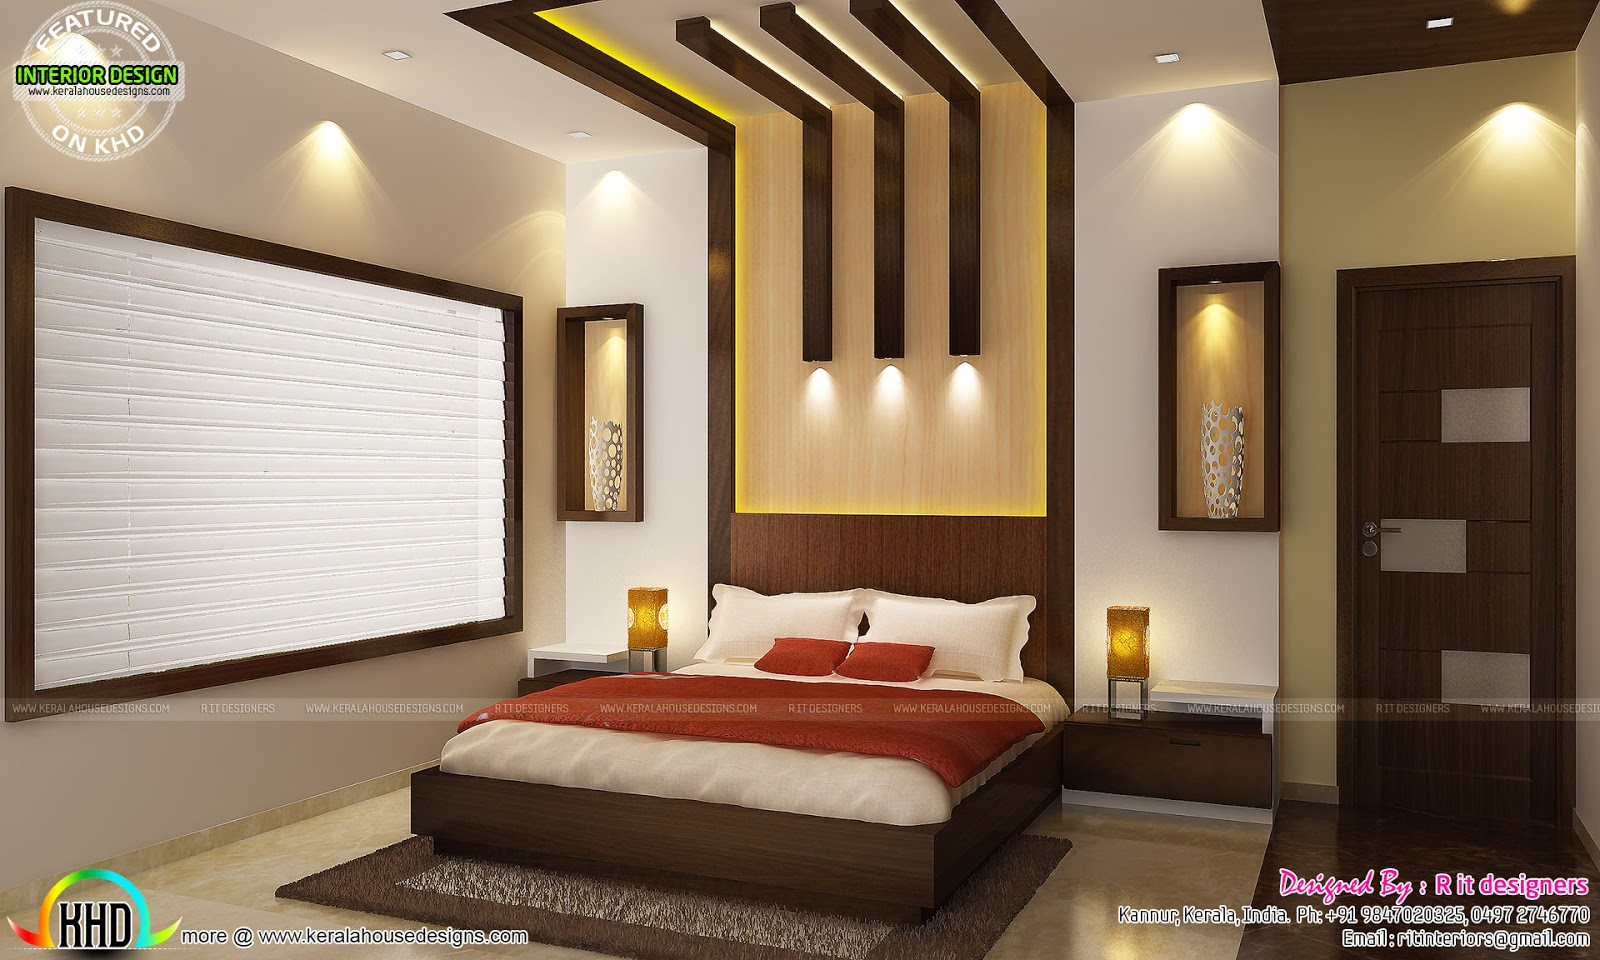 Kitchen living bedroom dining interior decor kerala for Bedroom decor pictures